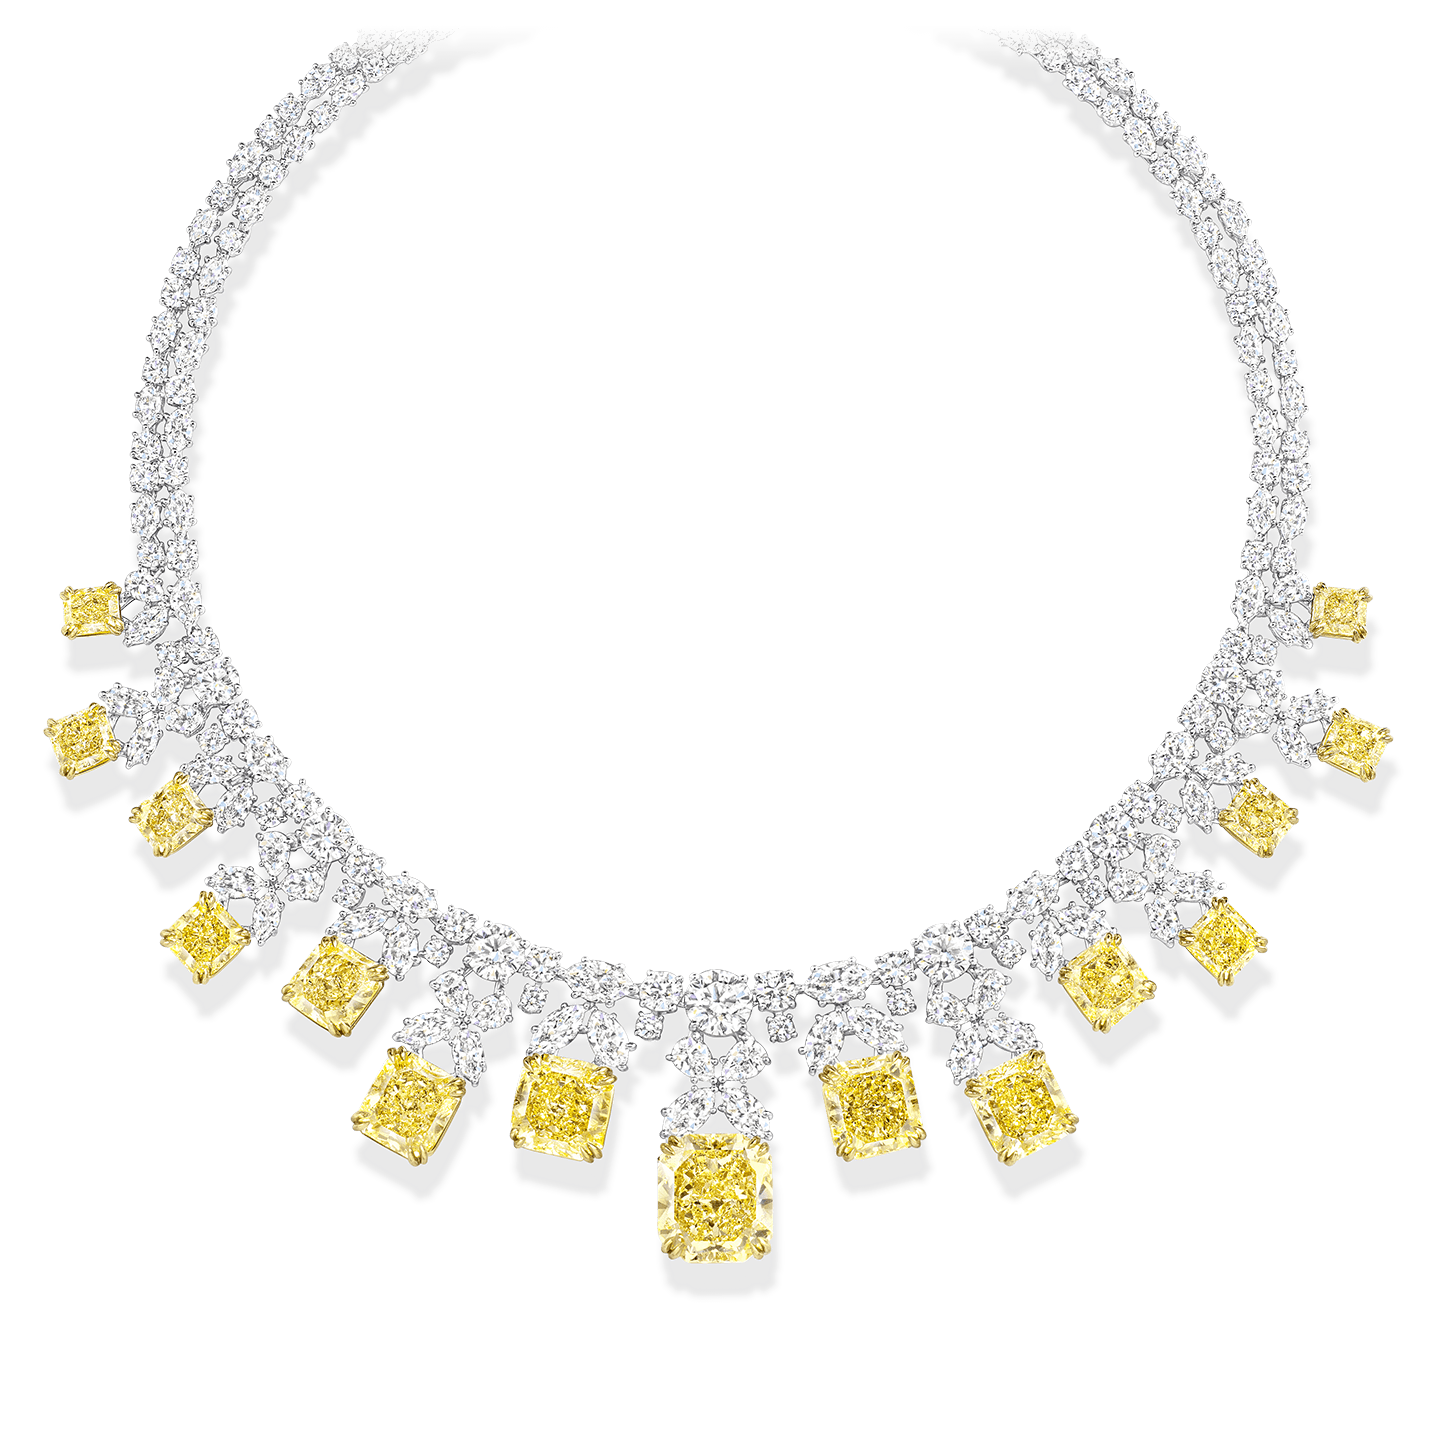 A necklace featuring w15 radiant-cut fancy yellow diamonds weighing a total of approximately 53.50 carats with 186 marquise, pear-shaped, and round brilliant colorless diamonds, set in platinum and 18 karat yellow gold